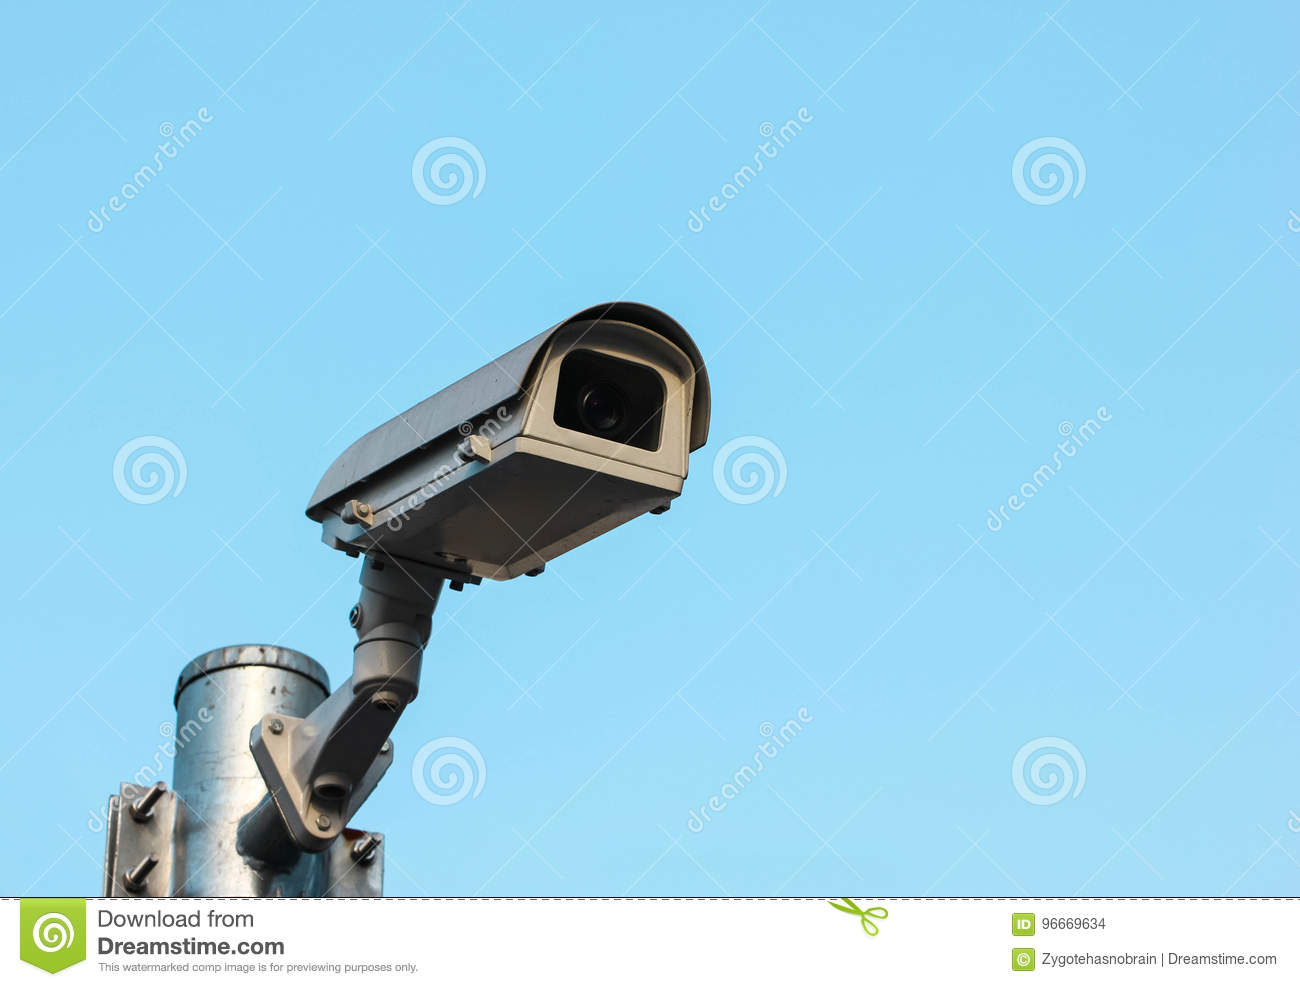 CCTV, Security Camera In The City.